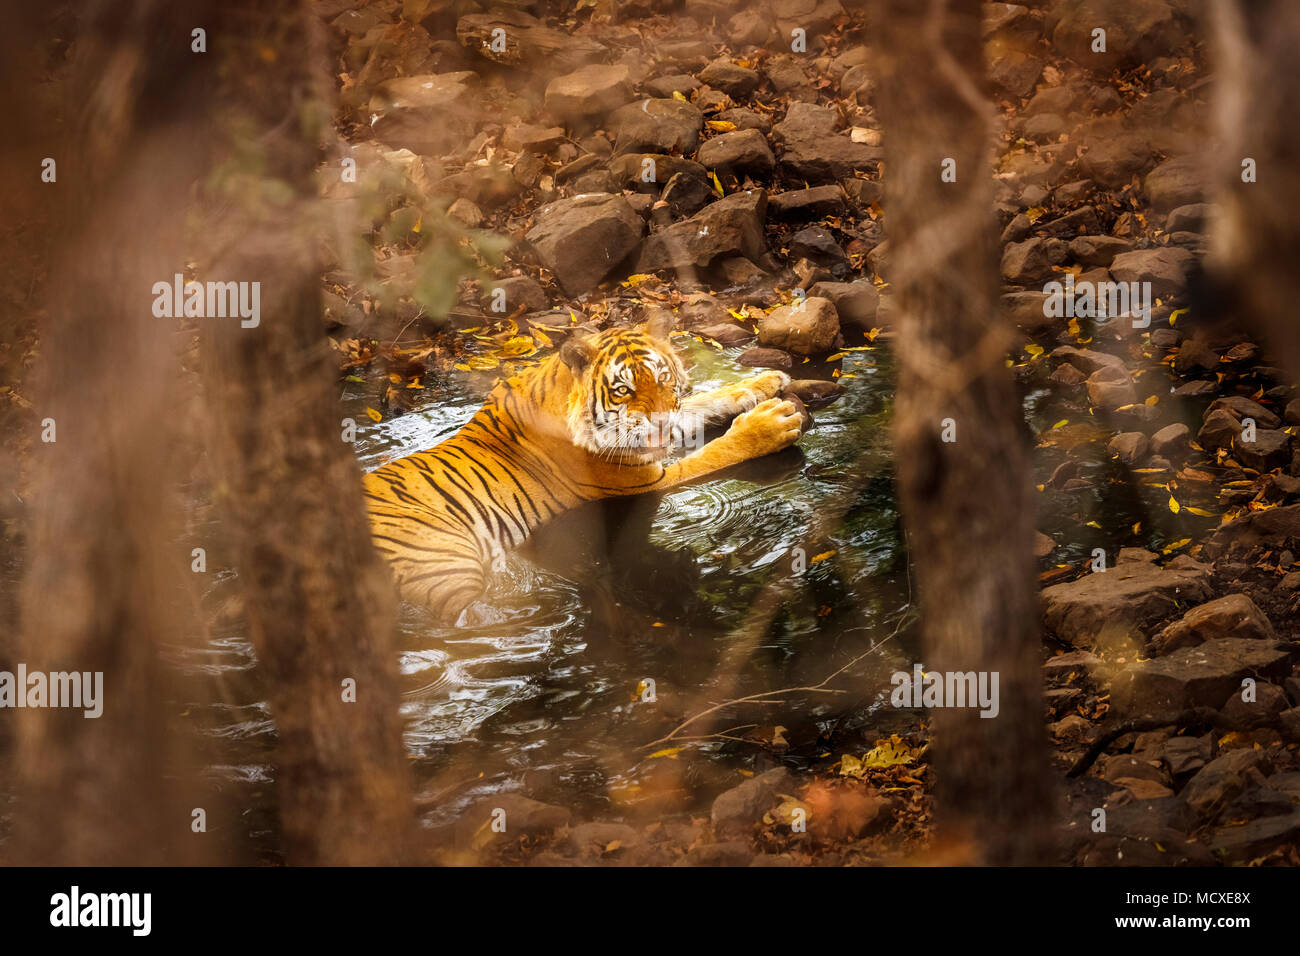 Snarling Bengal tiger (Panthera tigris) laying cooling in a waterhole partially concealed, Ranthambore National Park, Rajasthan, northern India - Stock Image